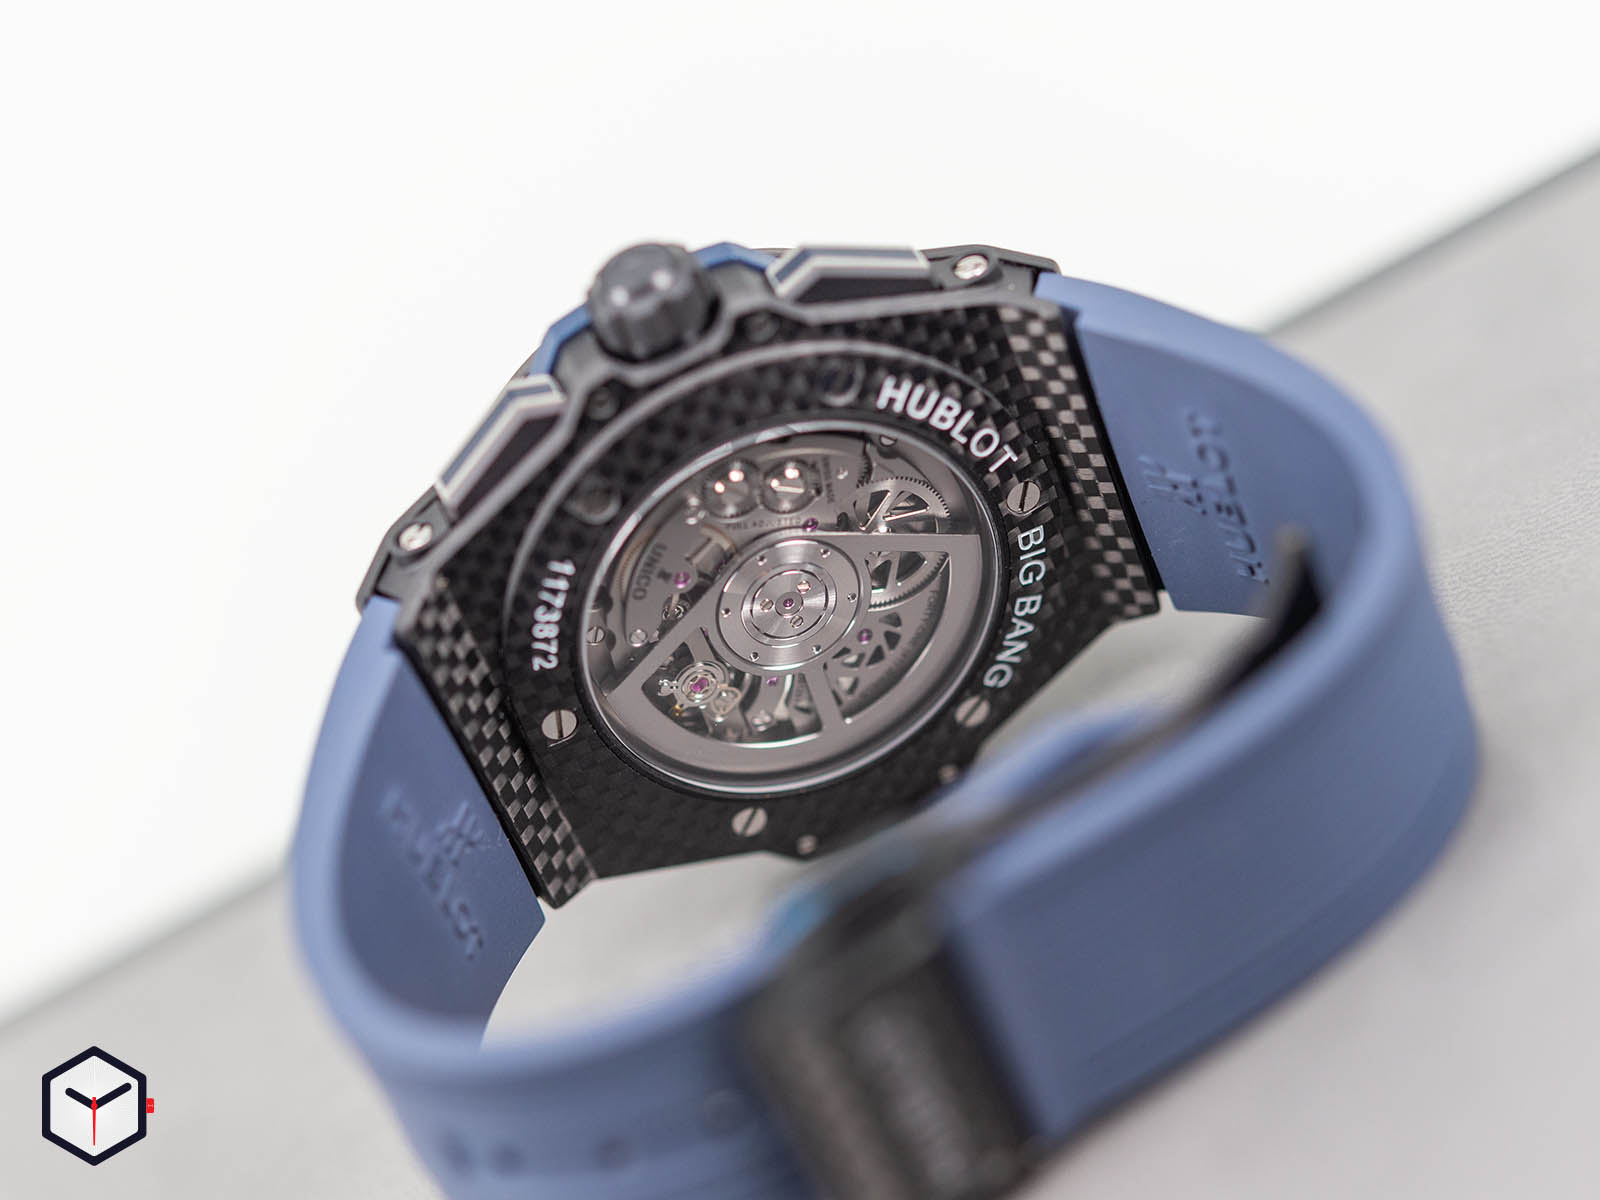 471-qx-7127-rx-hublot-big-bang-unico-gmt-carbon-6.jpg